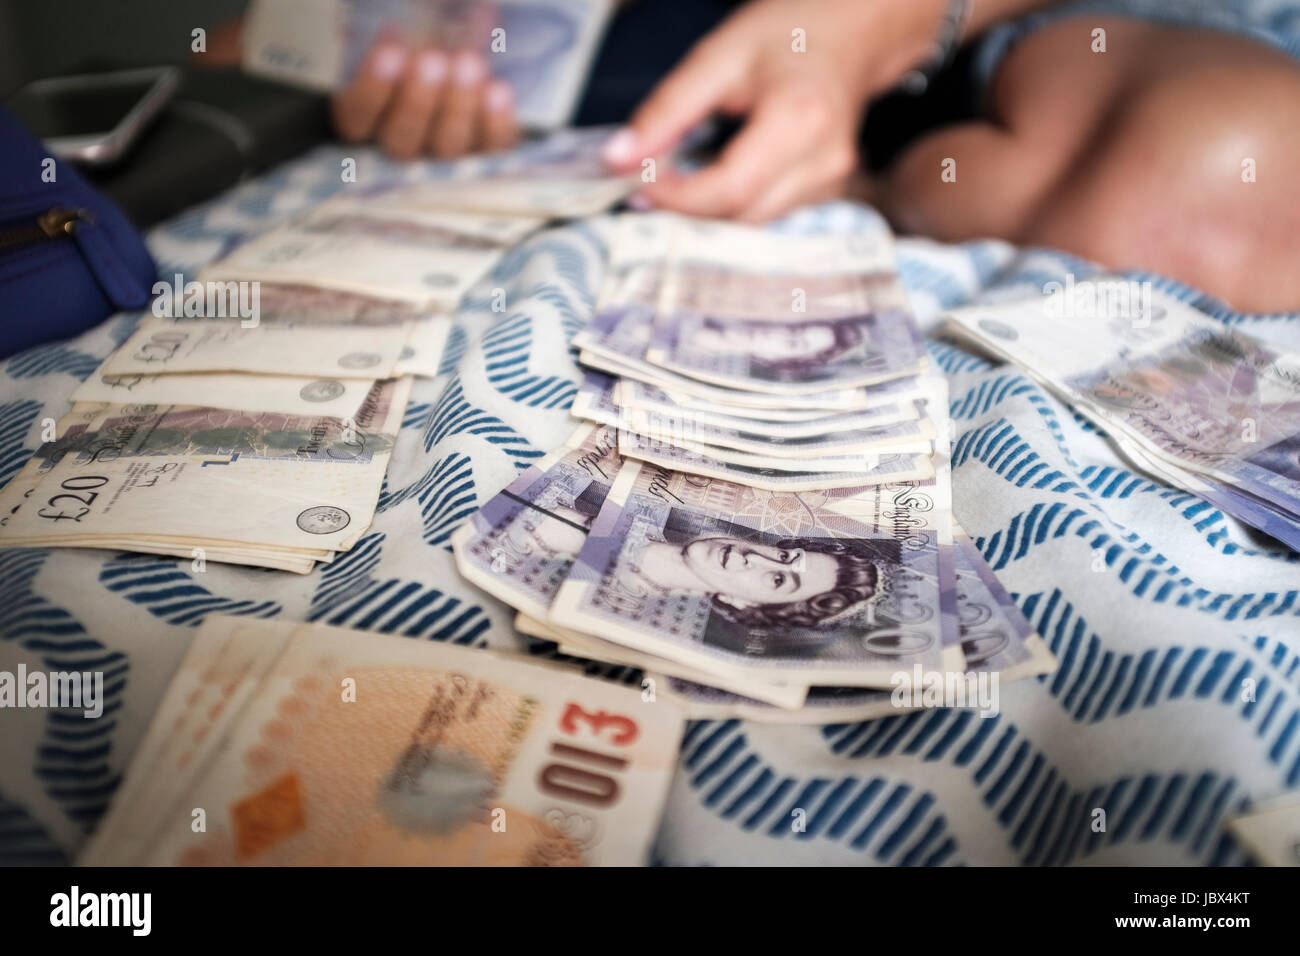 Person countin money-UK pound sterling - Stock Image